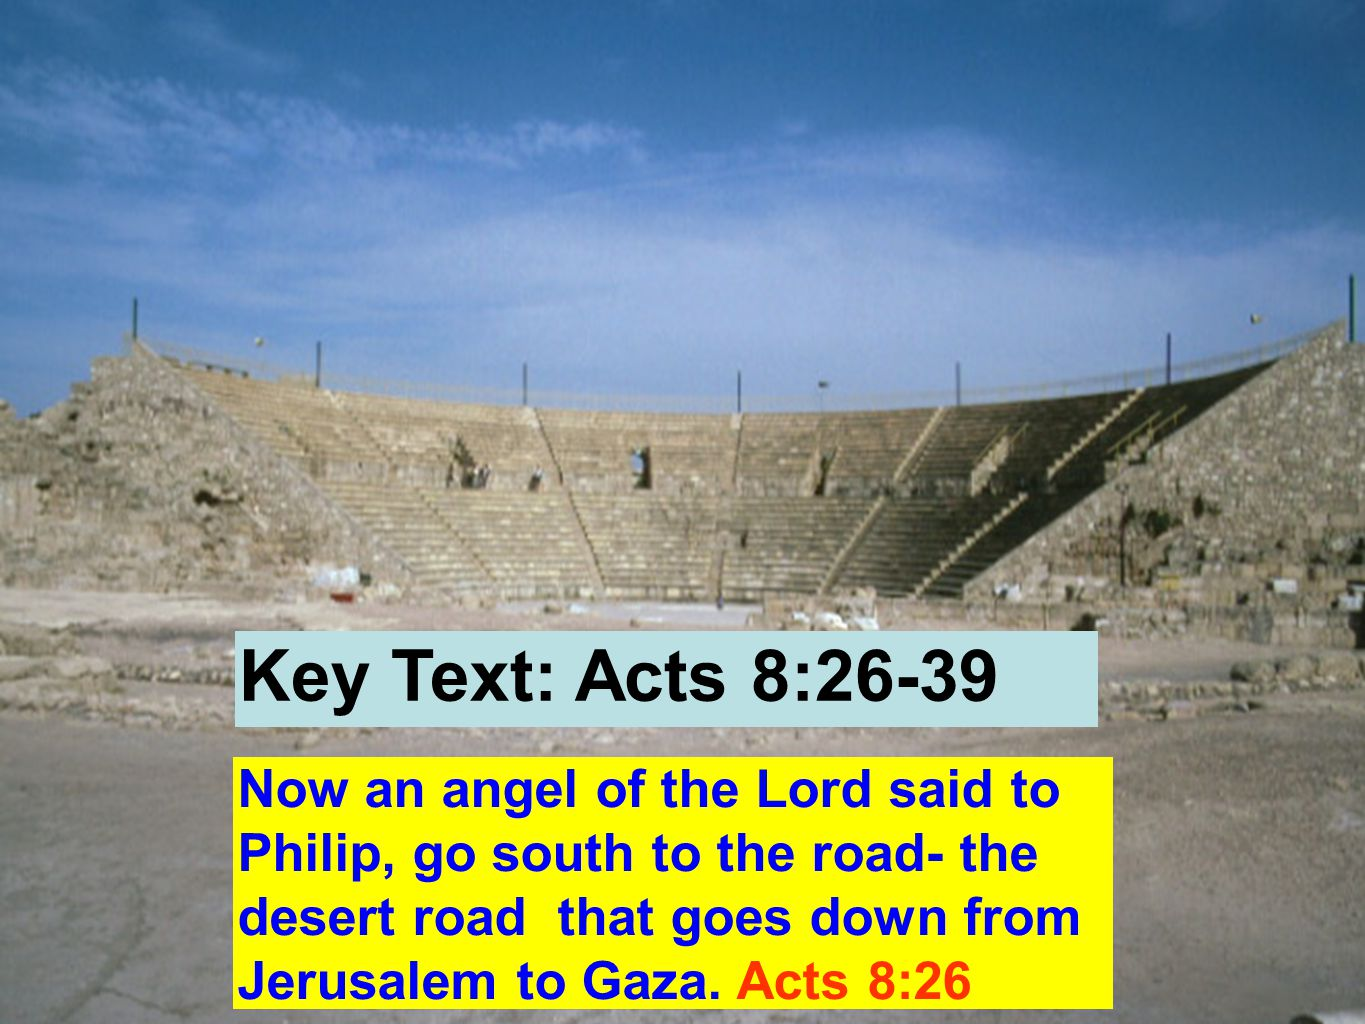 Now an angel of the Lord said to Philip, go south to the road- the desert road that goes down from Jerusalem to Gaza.